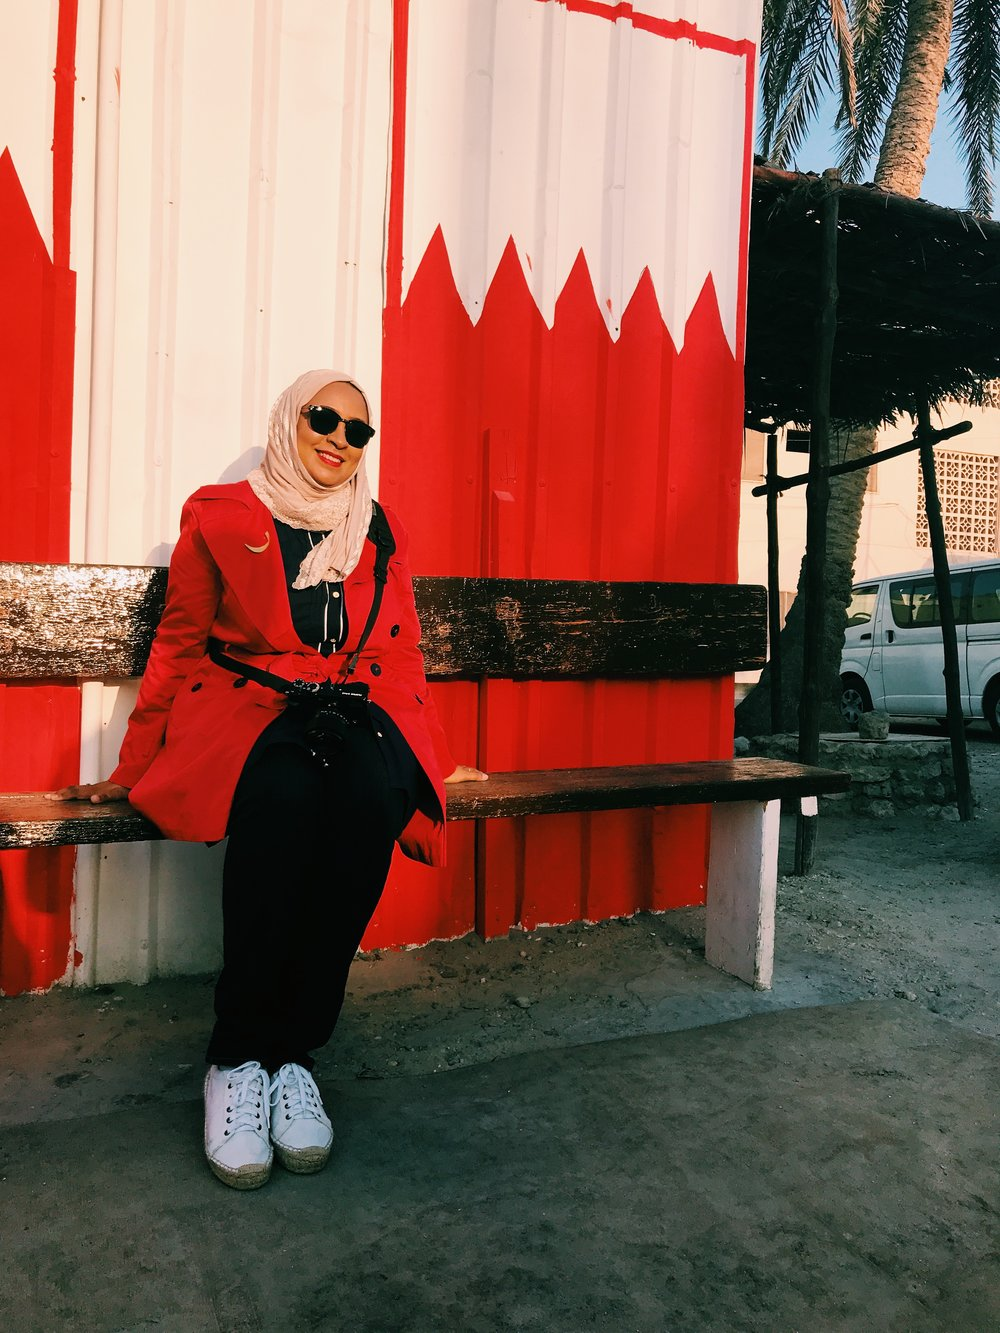 Who is Rasha ? - Born and raised in Muharraq Bahrain, Rasha Yousif is passionate about documentary and travel photography focusing on culture, architecture and traditional ways of living. Capturing moving objects or vibrant colours are what keep her photos alive. Rasha carefully chooses her travel expeditions to showcase less travelled cultural destinations through her lens. Coming from a purely Finance background, colours and creativity are what keeps Rasha going and every day is a battle between her left and right brain!